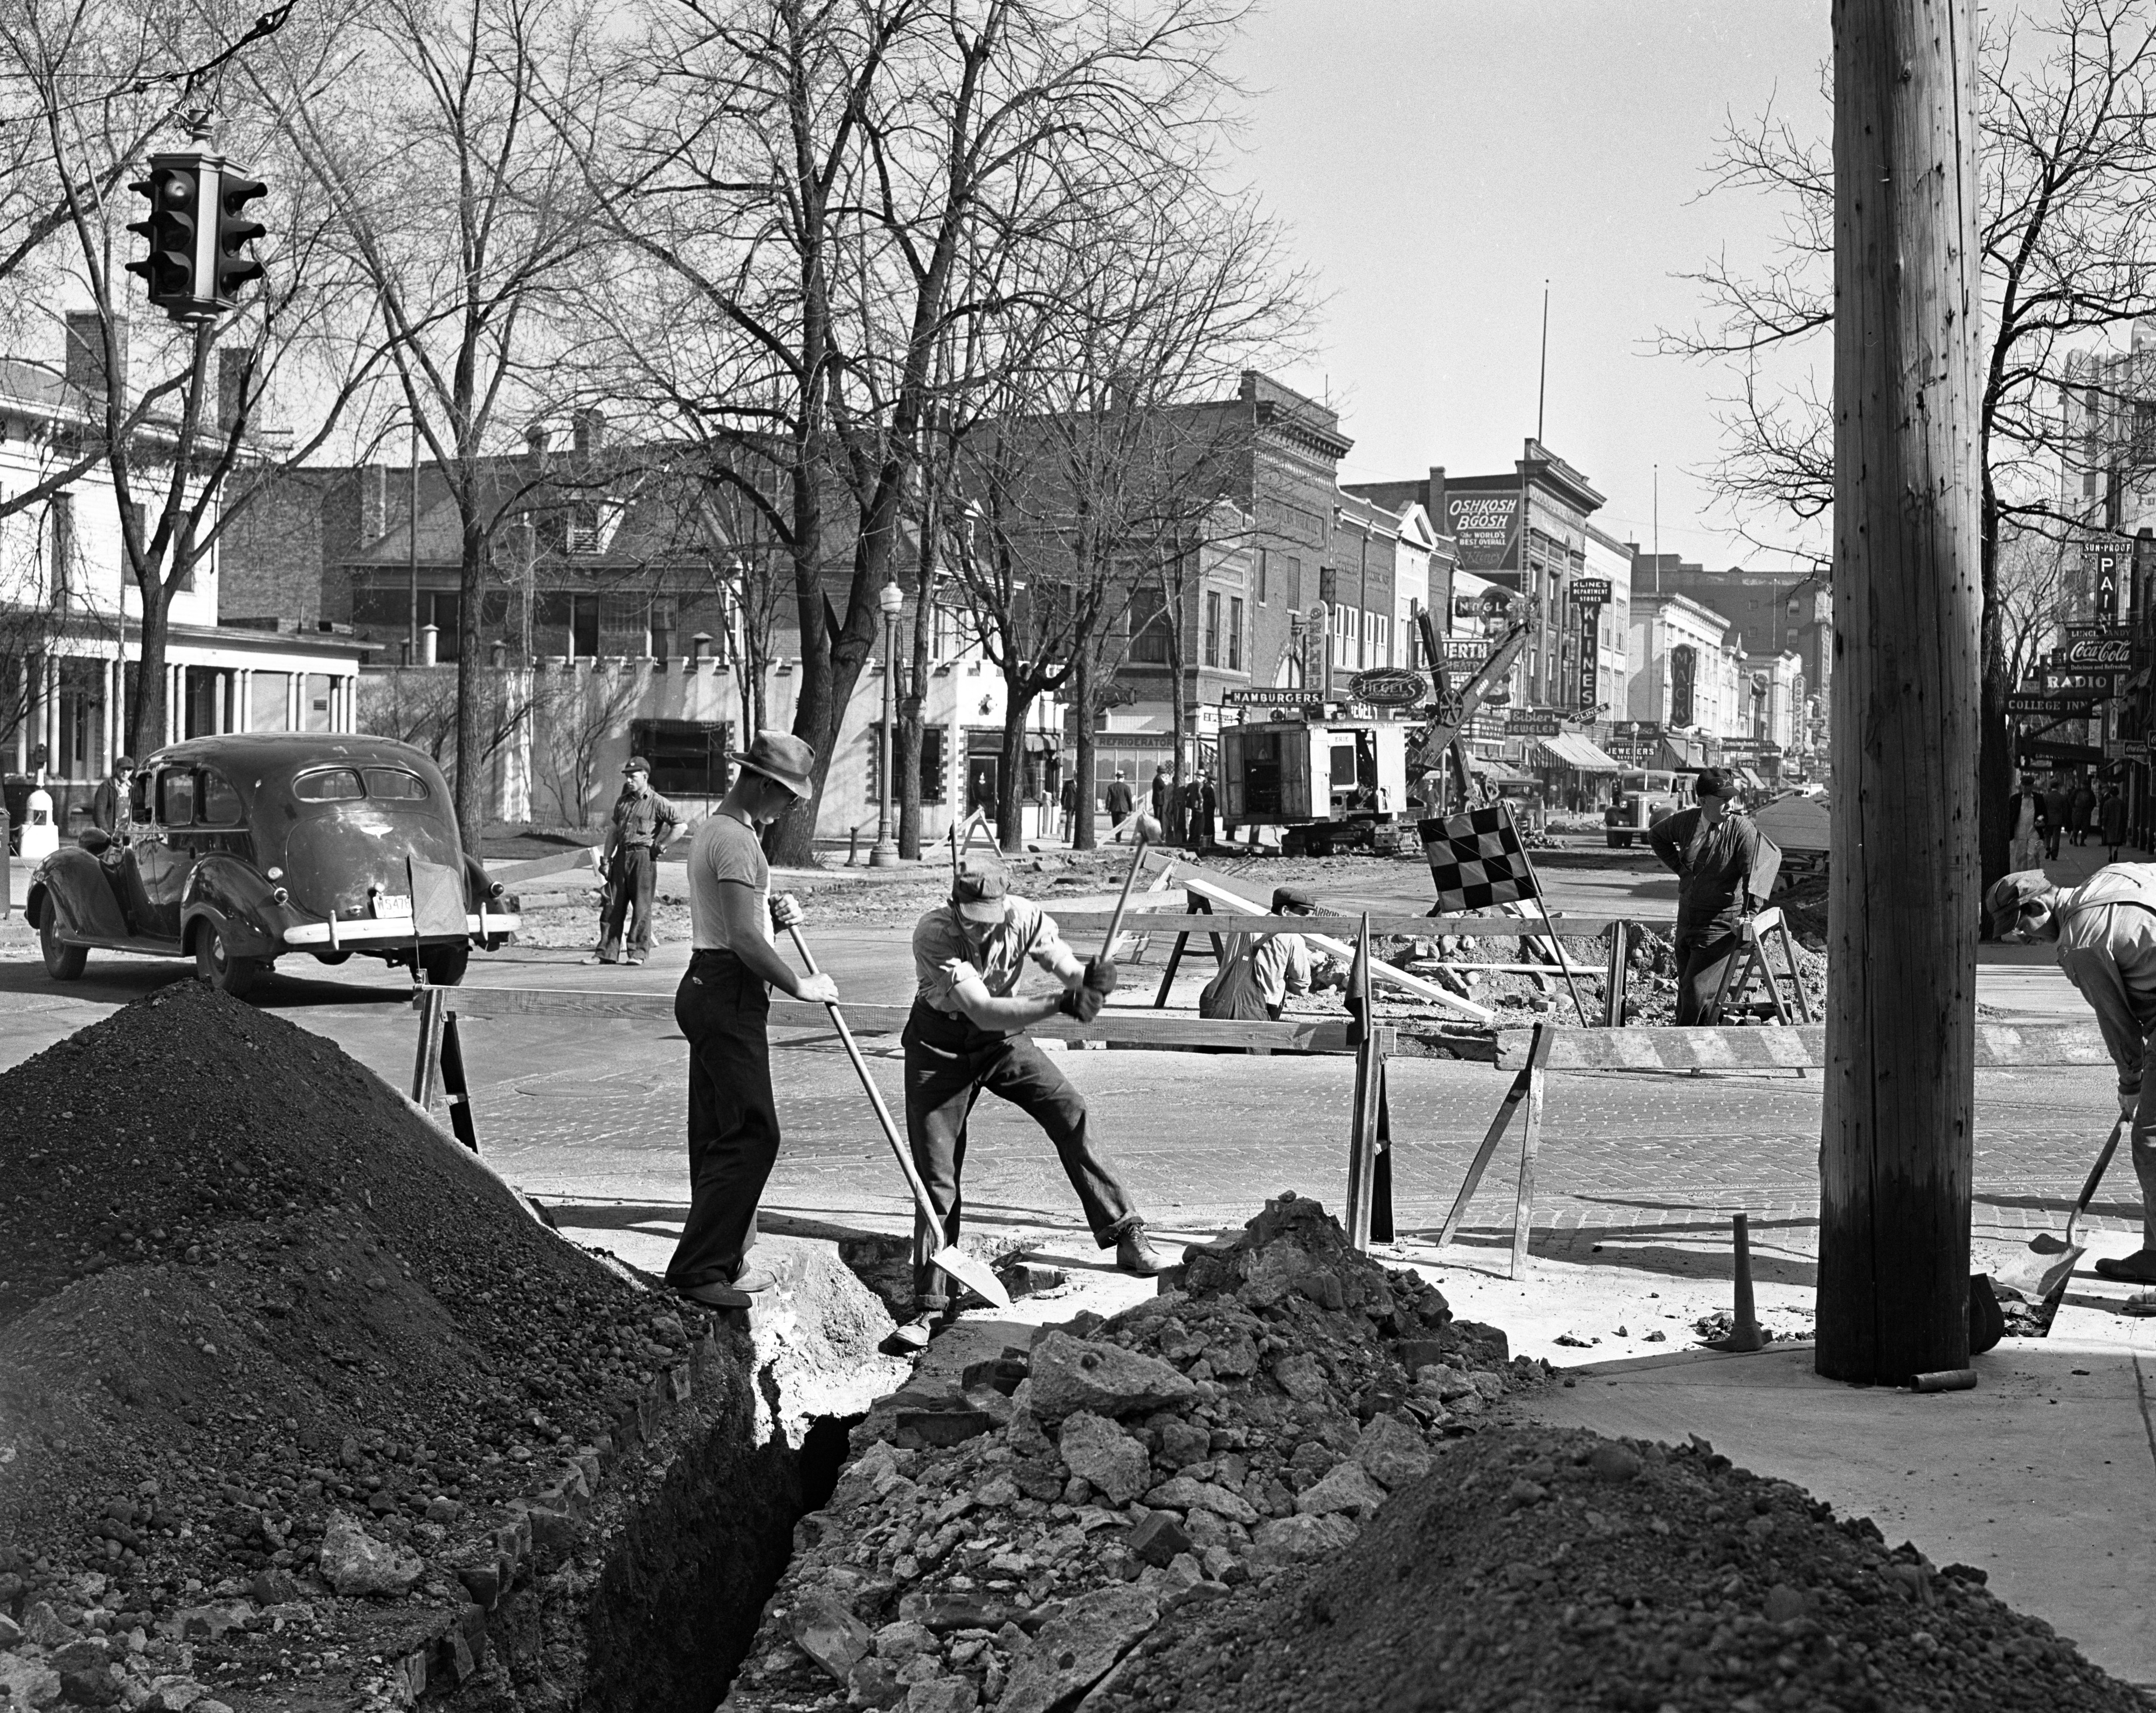 Removing Pavement on Main Street, April 1939 image